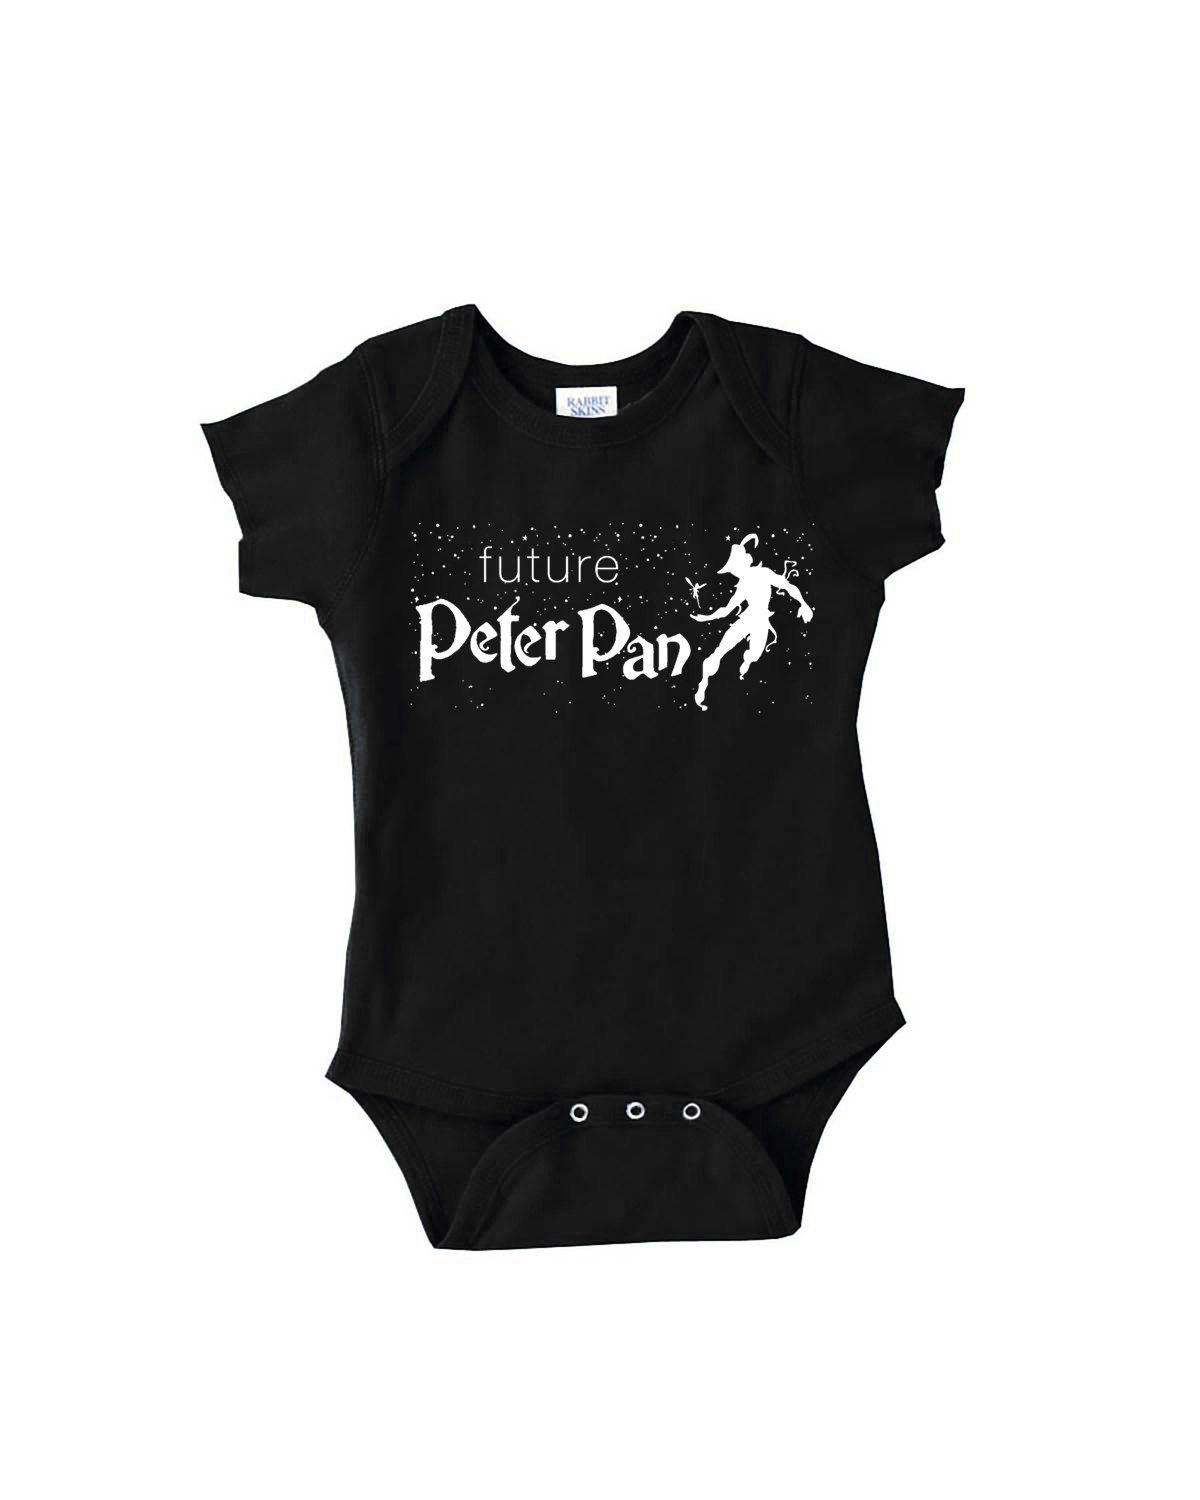 27bebf5fb Future Peter Pan - Multiple Color Options Available - Trendy baby ...